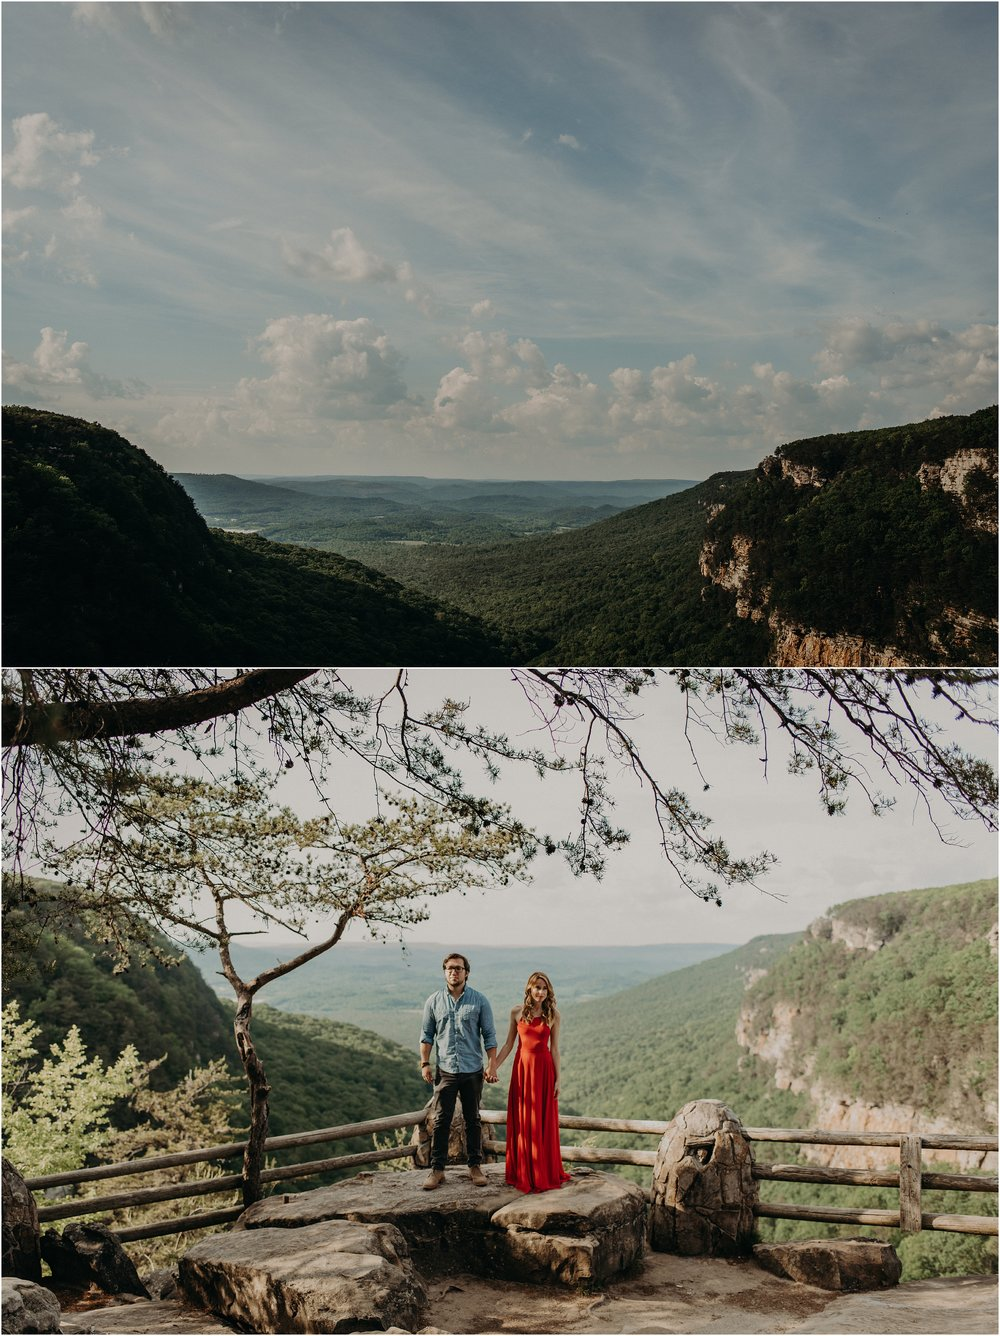 The overlook at Cloudland Canyon state park in Georgia is the backdrop for this adventurous engagement session